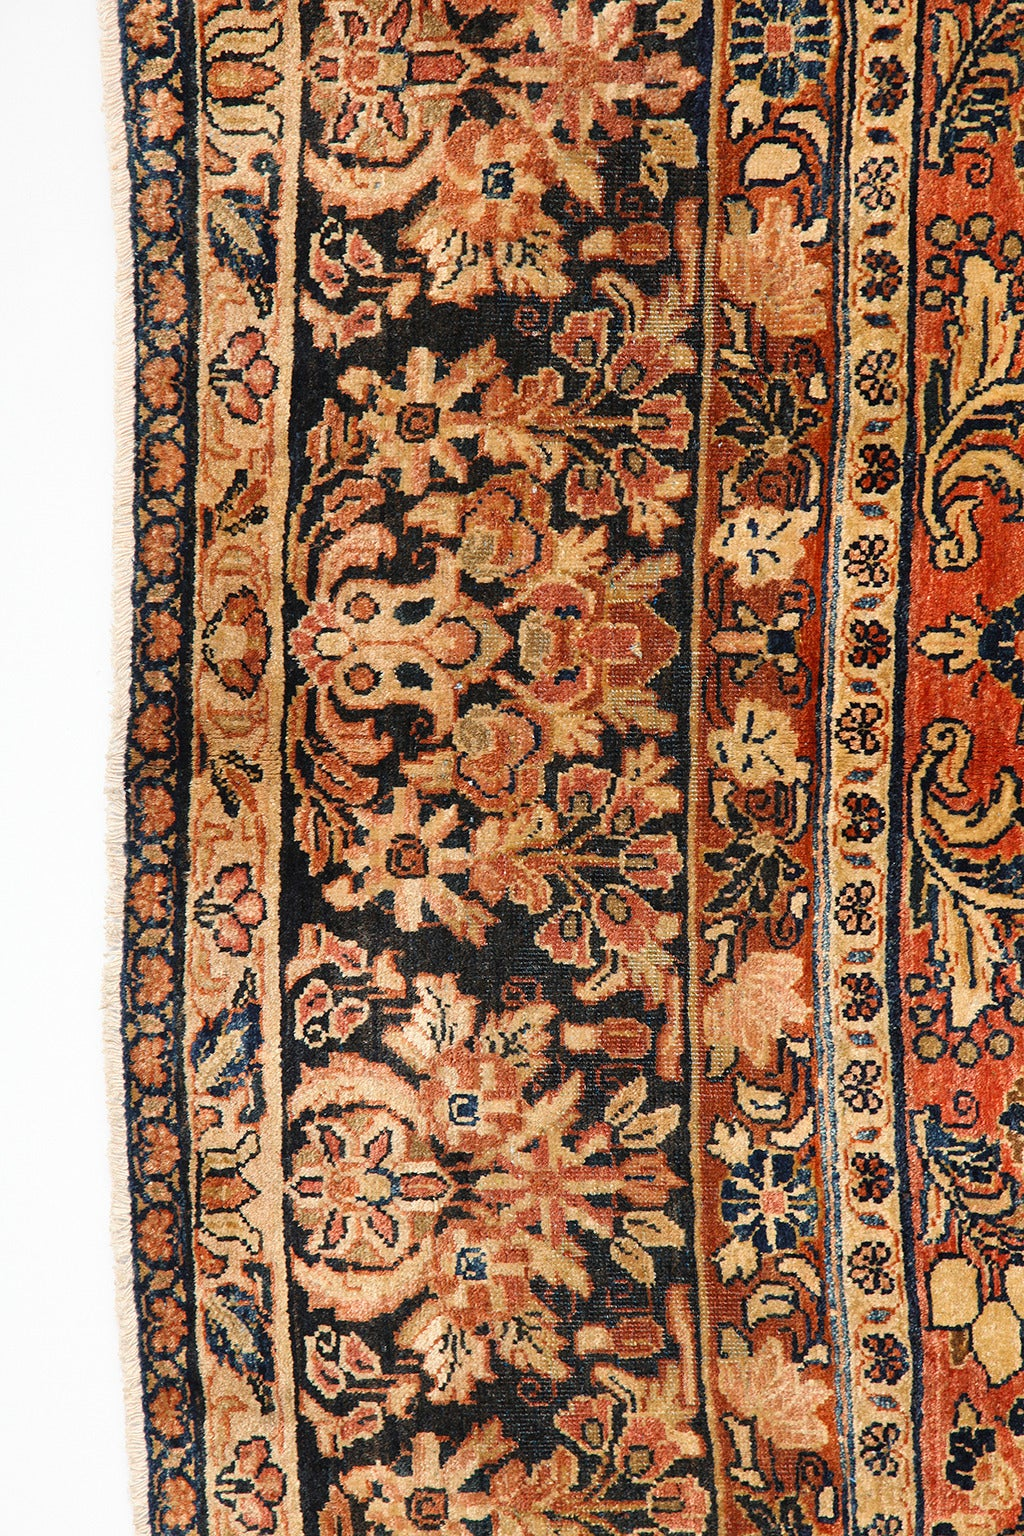 Persian Sarouk Carpet with Pure Wool Pile and Natural Vegetable Dyes, circa 1910 6